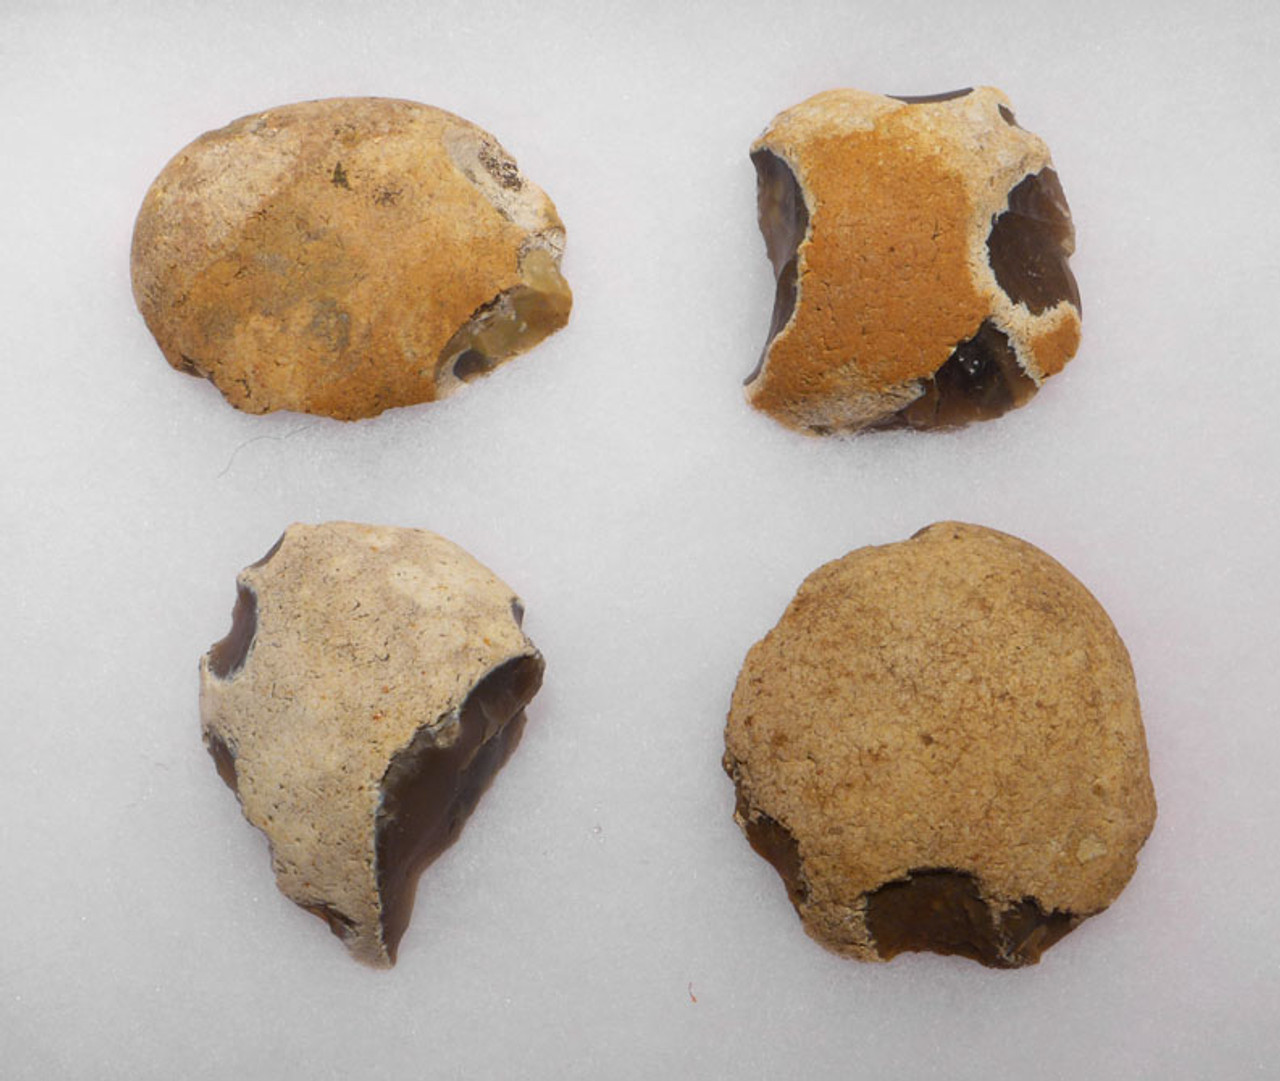 SET OF FOUR OLDOWAN PEBBLE TOOL SCRAPERS FROM THE LOWER PALEOLITHIC PERIOD OF ENGLAND *PB121